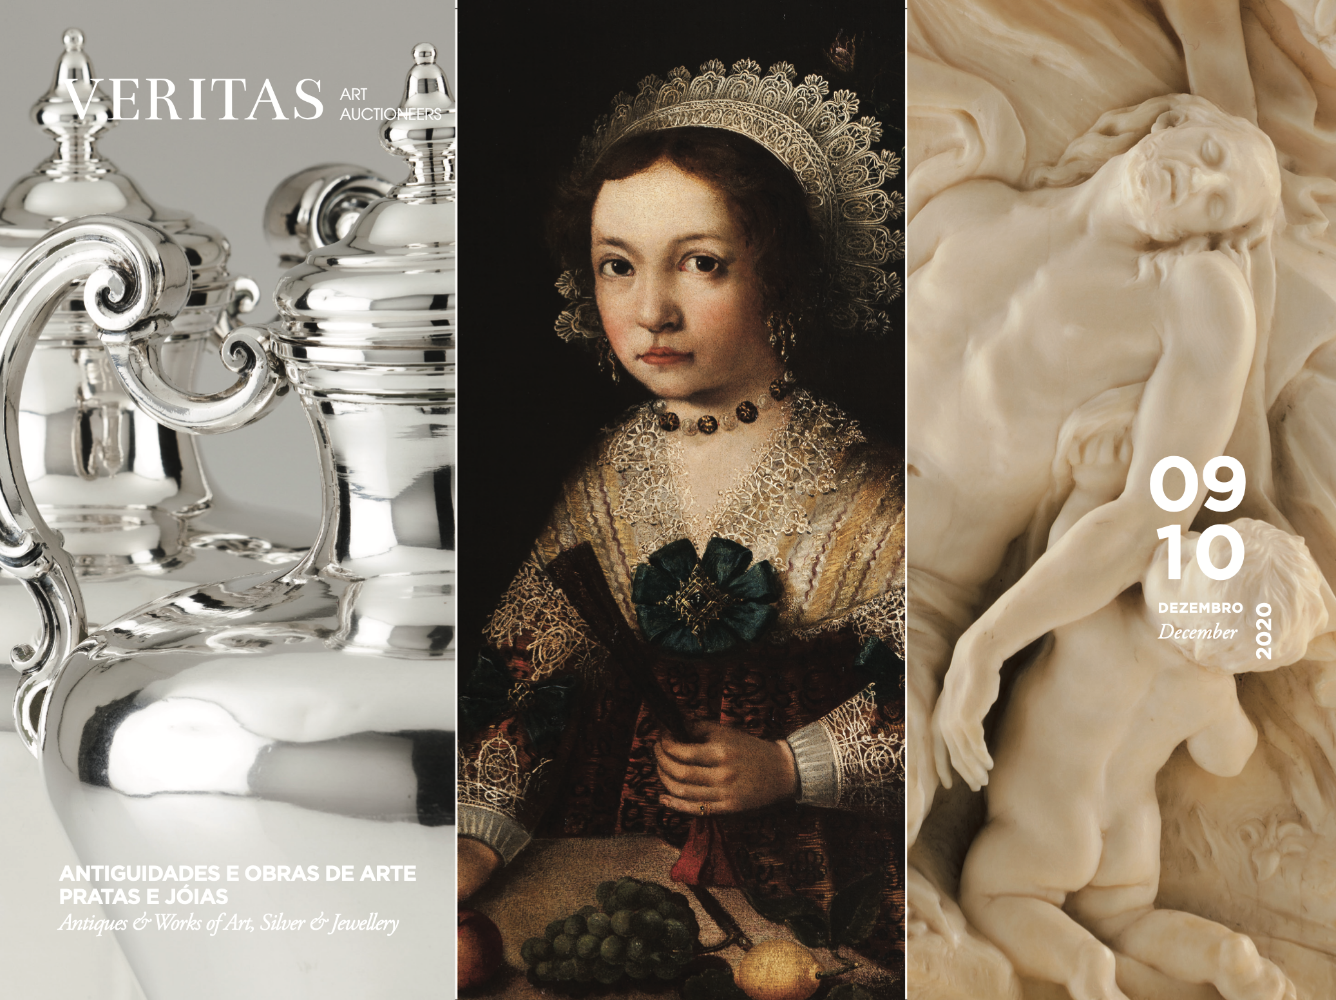 Antiques & Works of Art, Silver & Jewellery - Auction 103